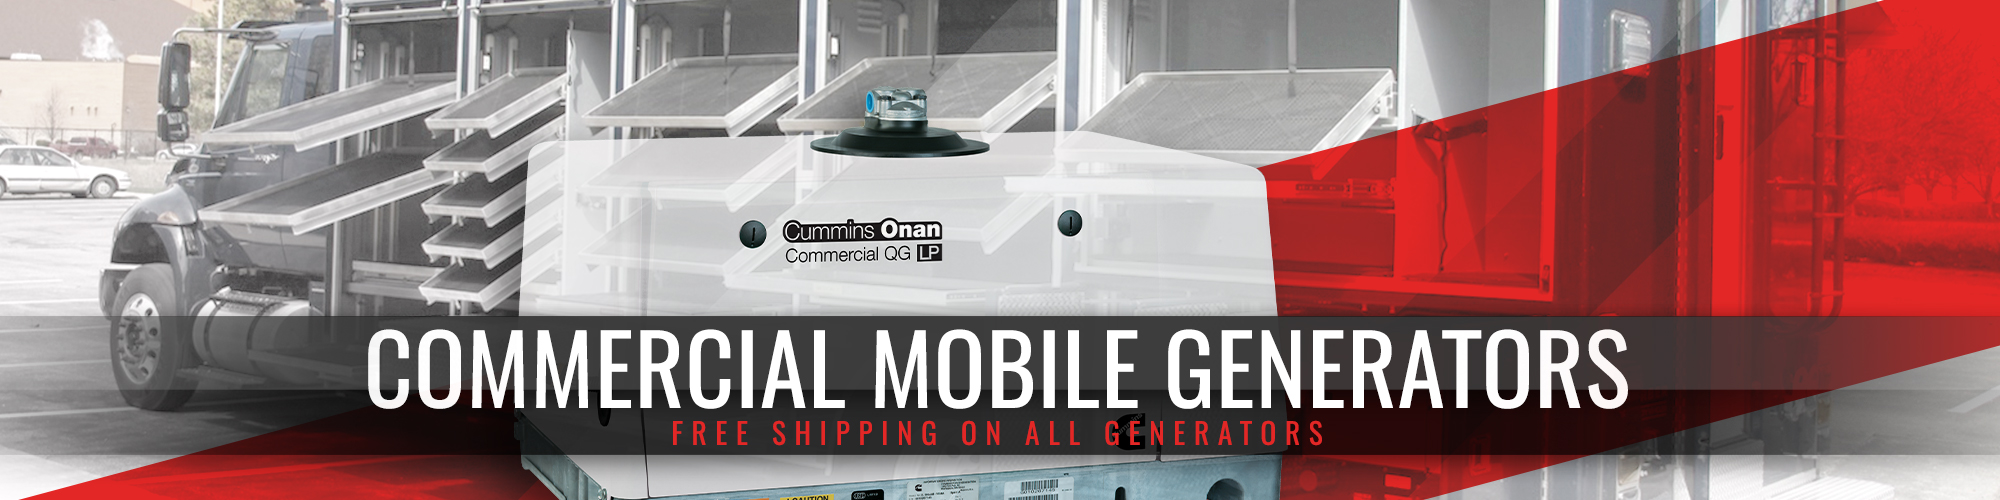 Commercial Mobile Generators